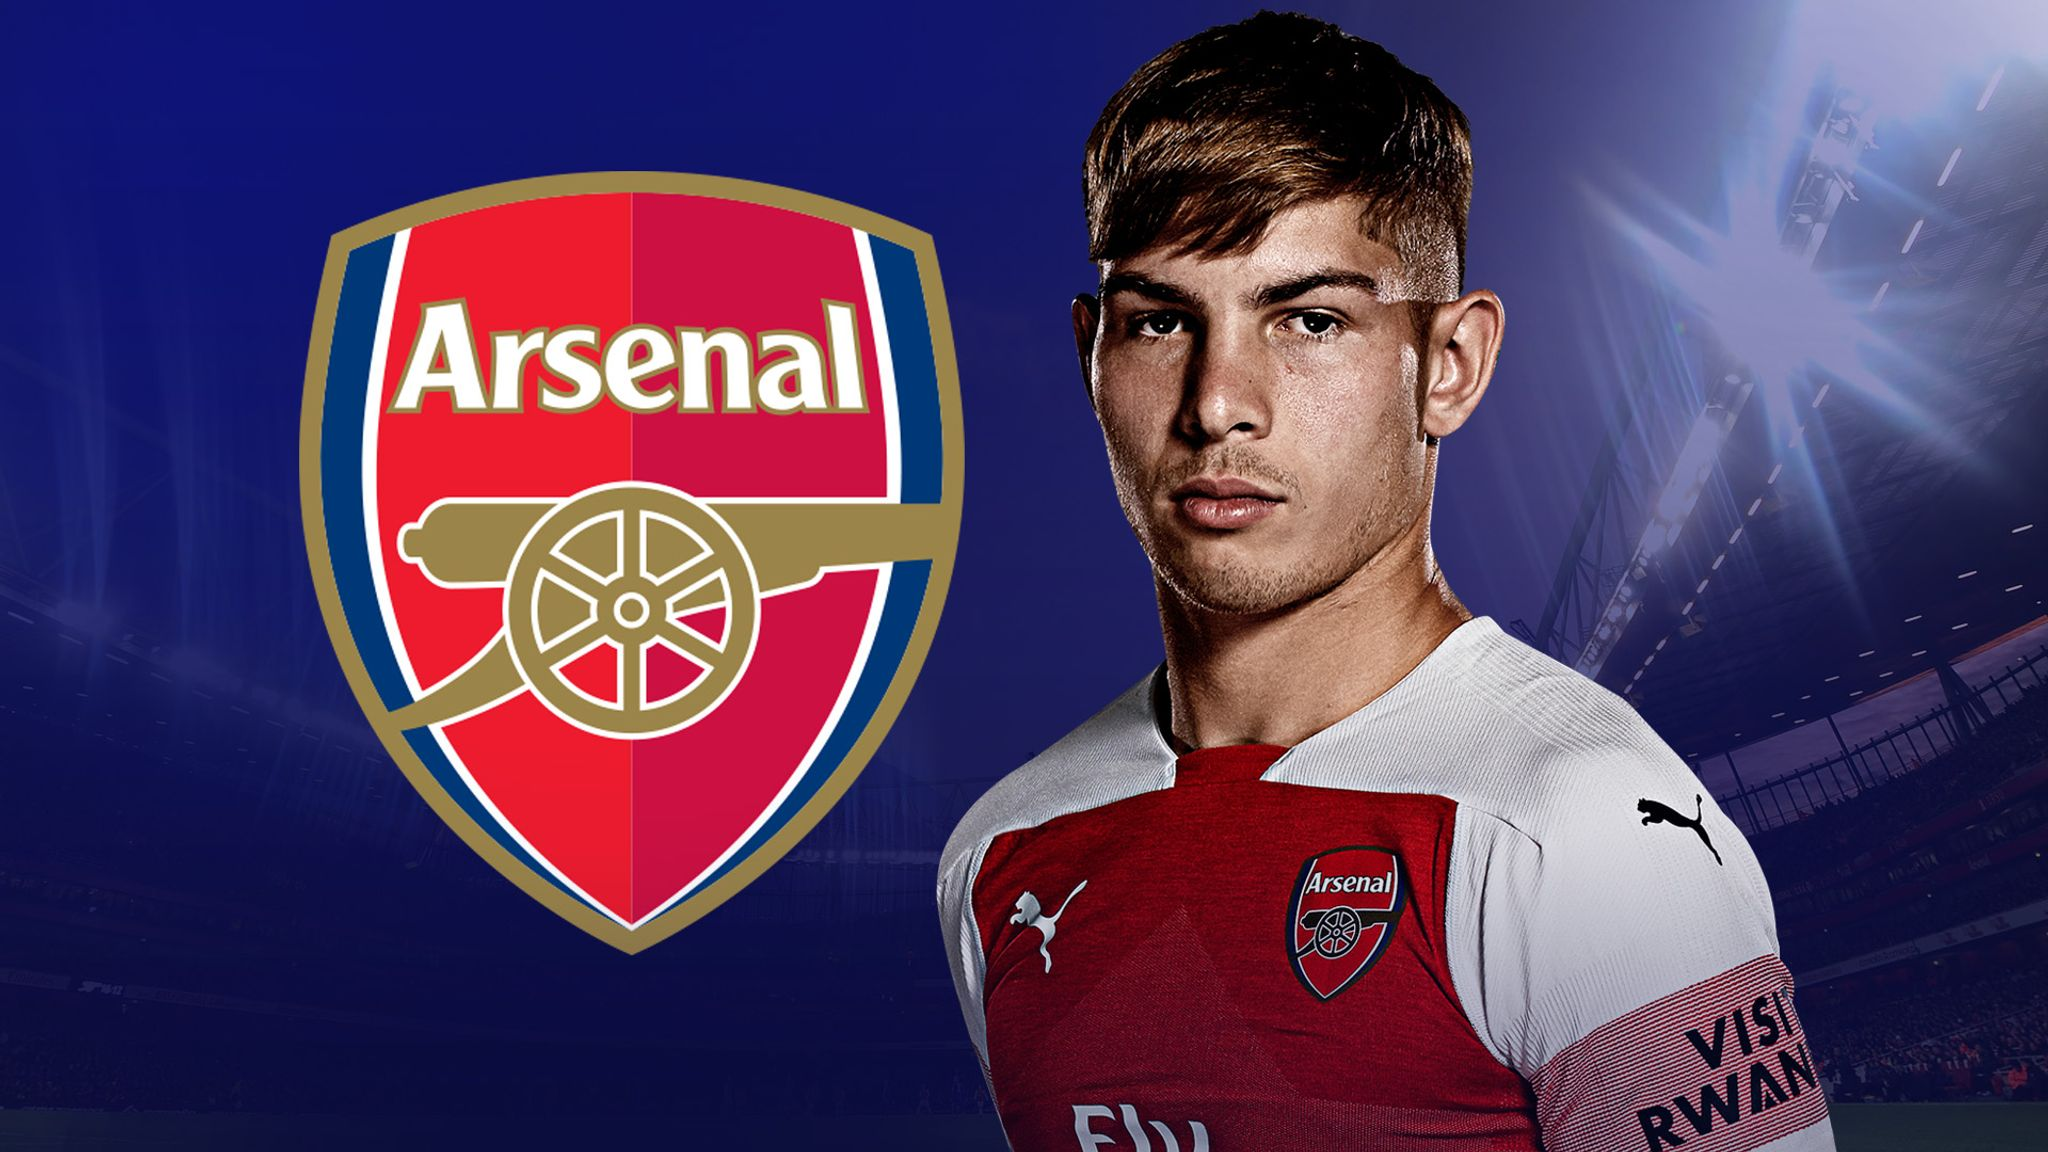 Emile Smith Rowe Arsenal S Rising Star Taking His Chances Under